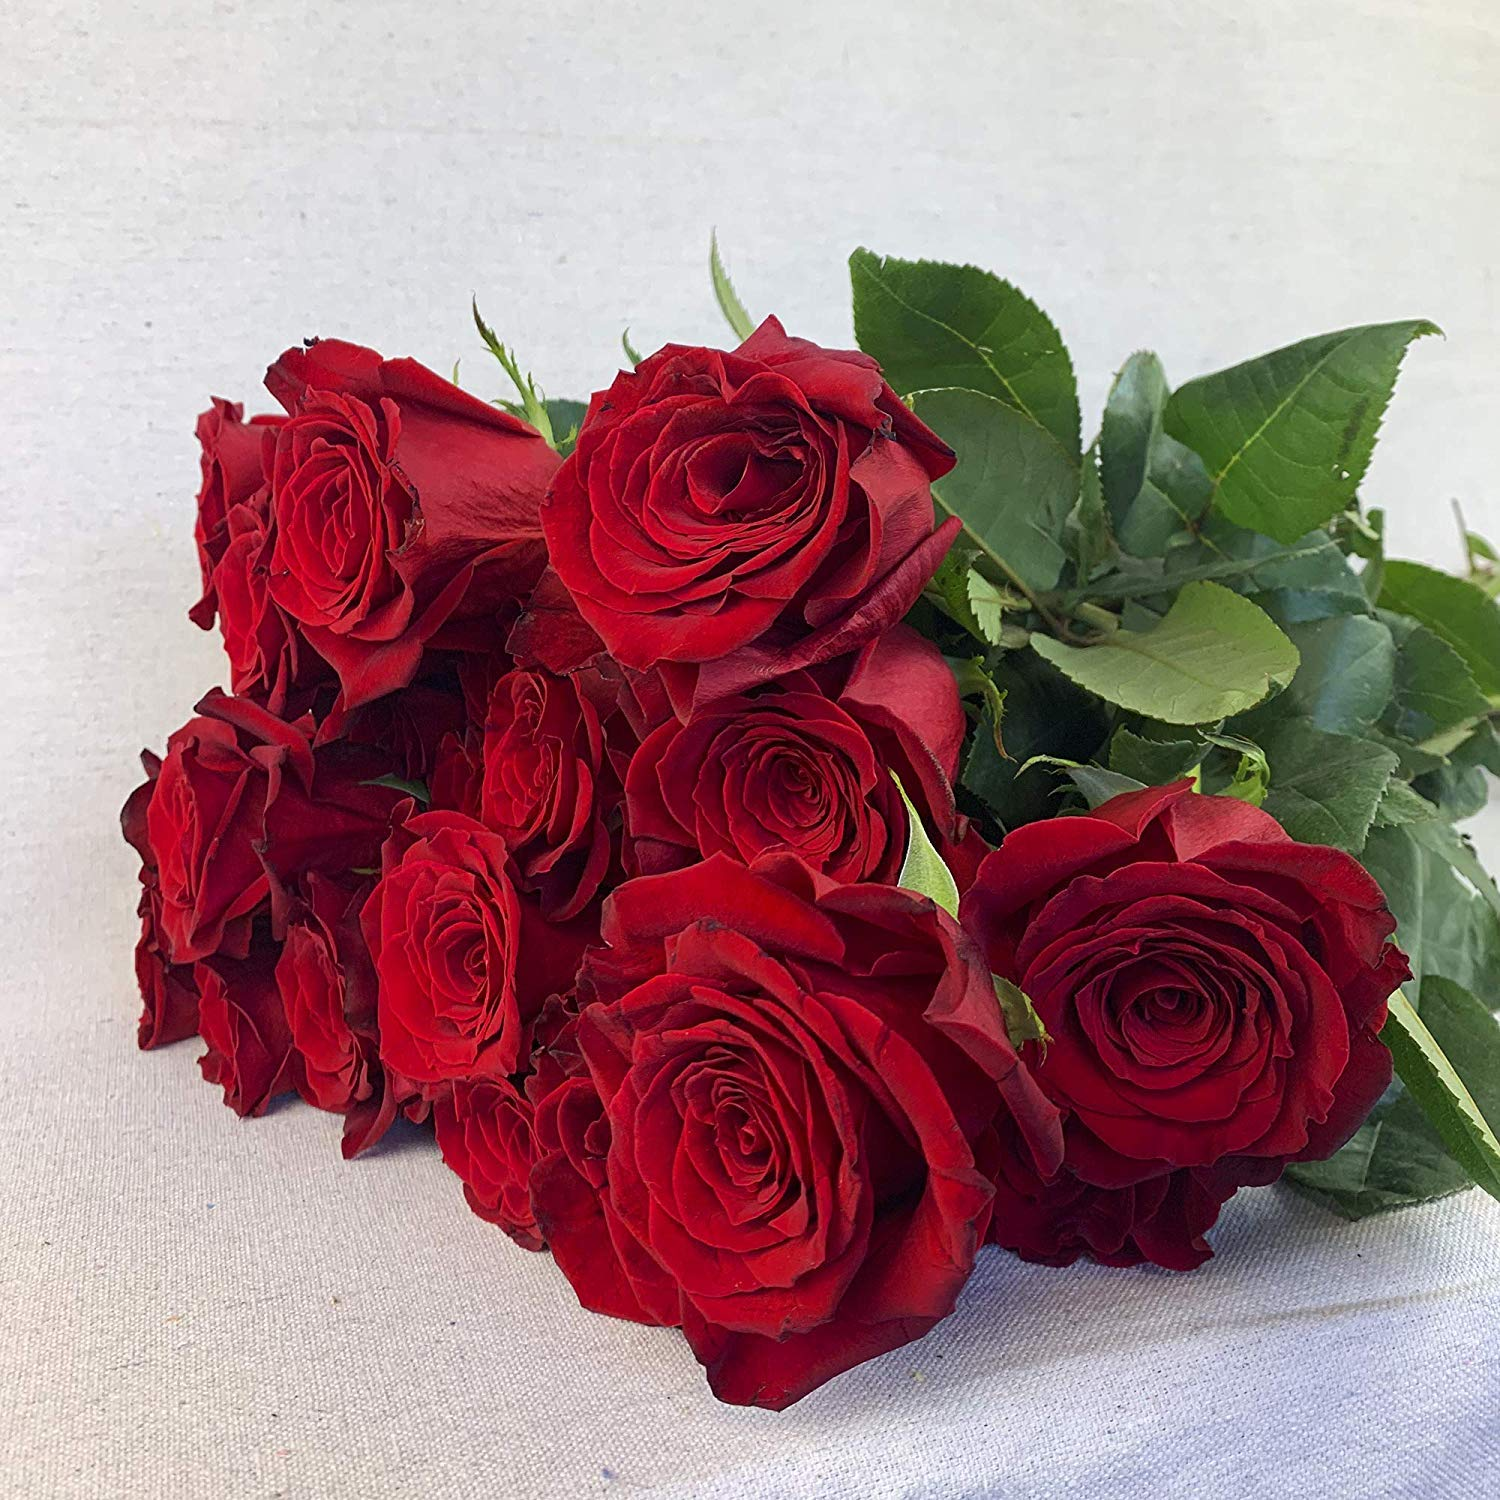 Green Choice Flowers - 24 (2 Dozen) Premium Red Fresh Roses with 20 inch Long Stem Farm Fresh Flowers Beautiful Red Rose Flower Cut Per Order Direct from Farm Fast Free Delivery Long Lasting by Greenchoiceflowers (Image #6)